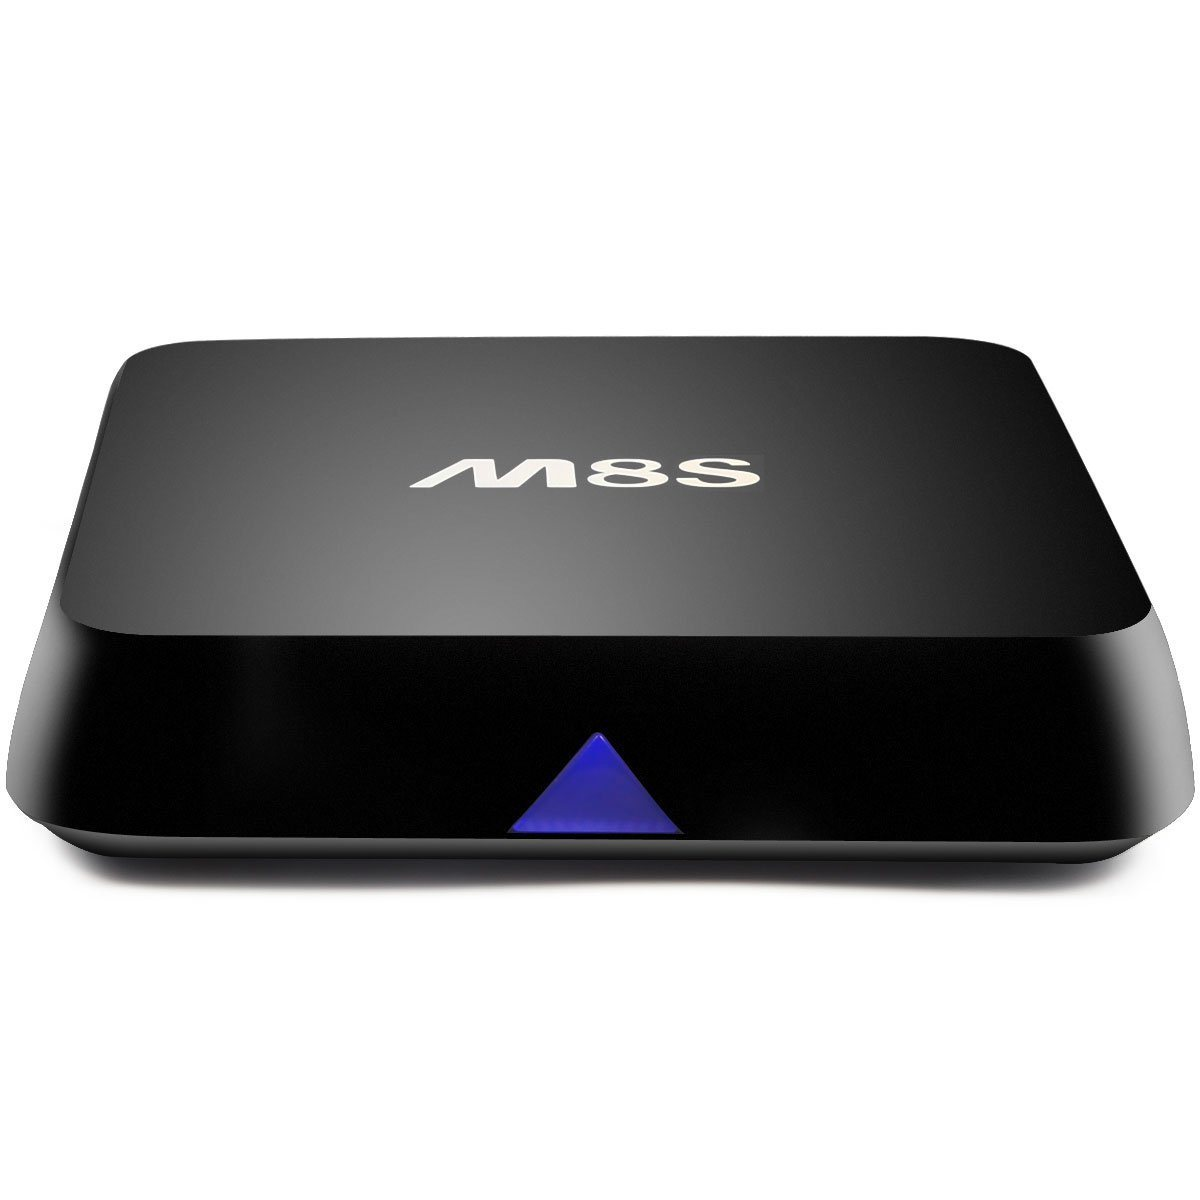 Factory Wholesale M8s TV Box HDMI Sender Receiver Ott TV Box